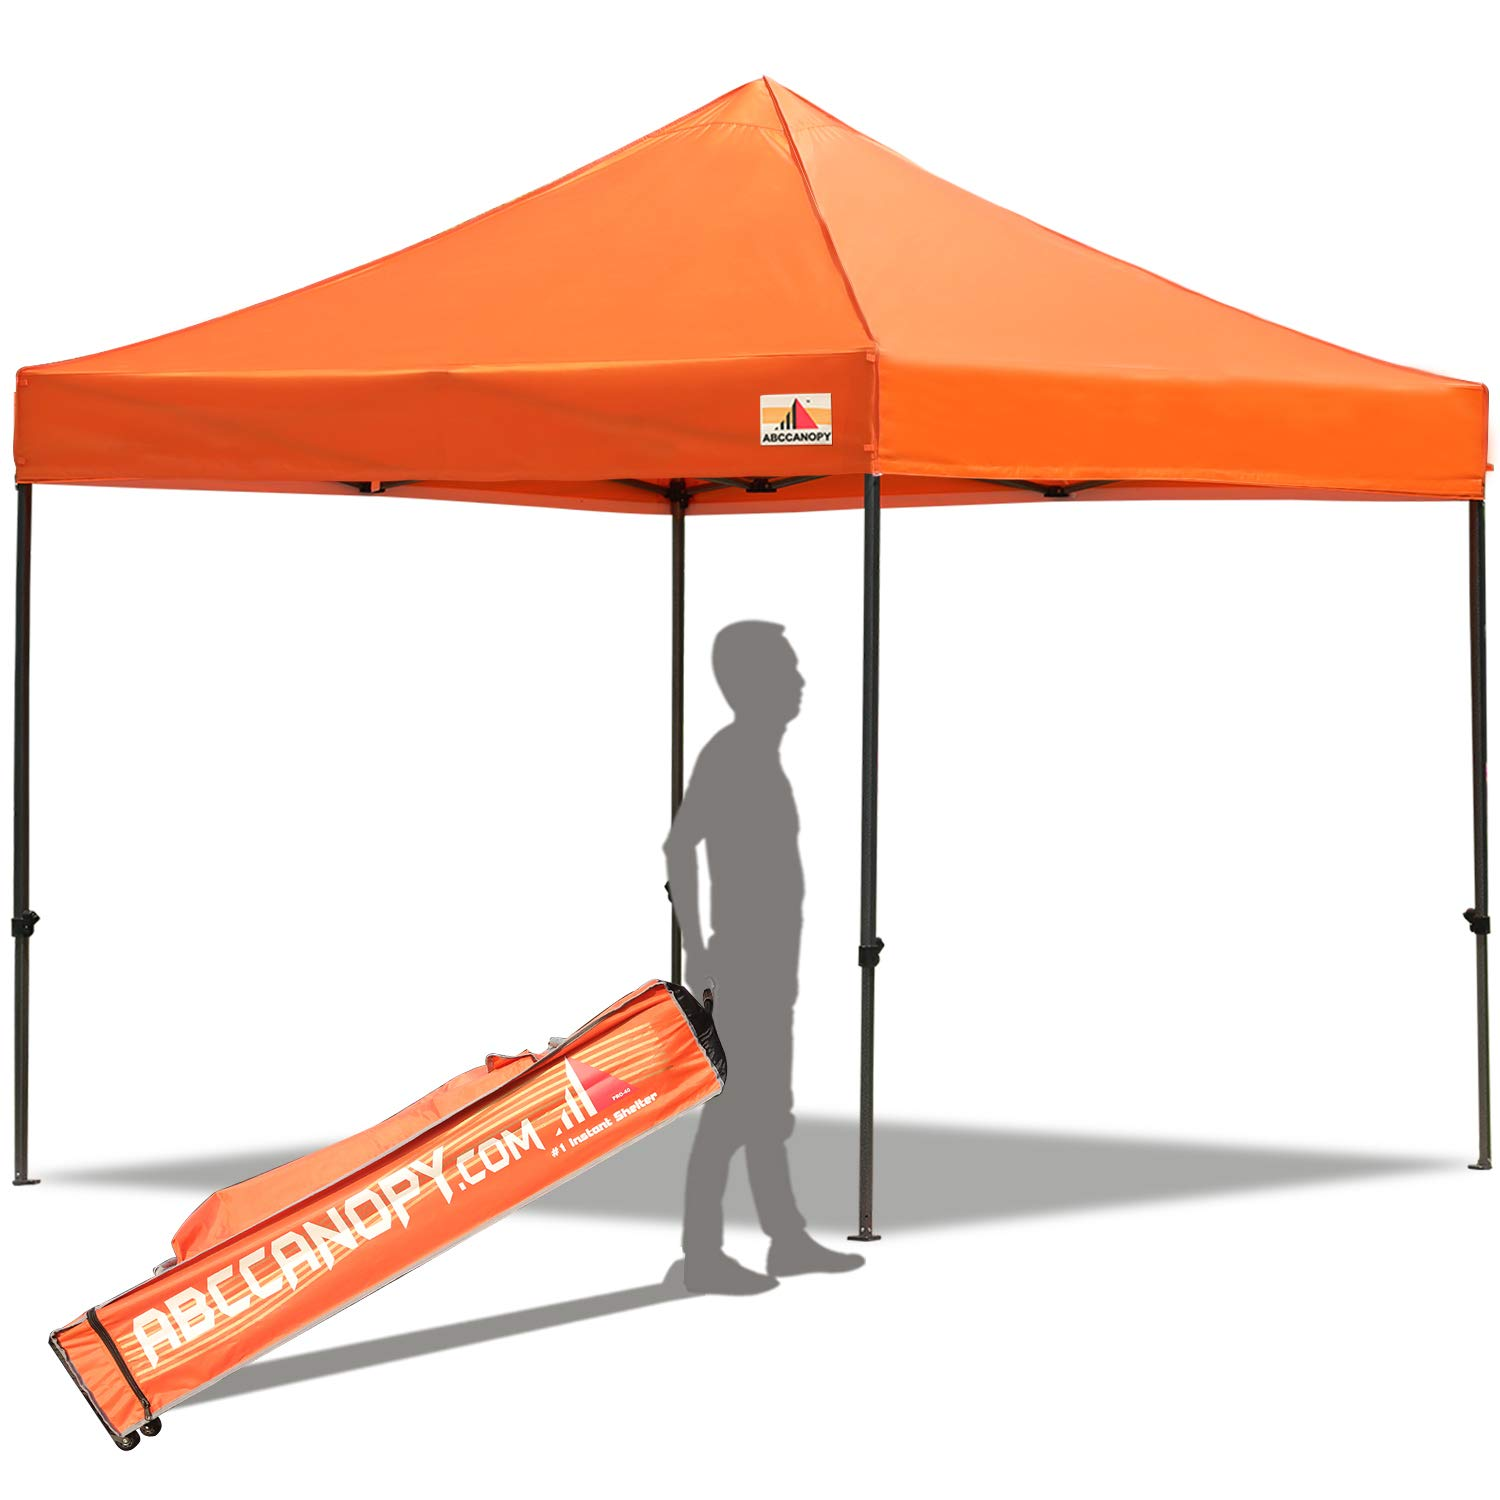 ABCCANOPY Pop up Canopy Tent Commercial Instant Shelter with Wheeled Carry Bag, 10x10 FT Orange